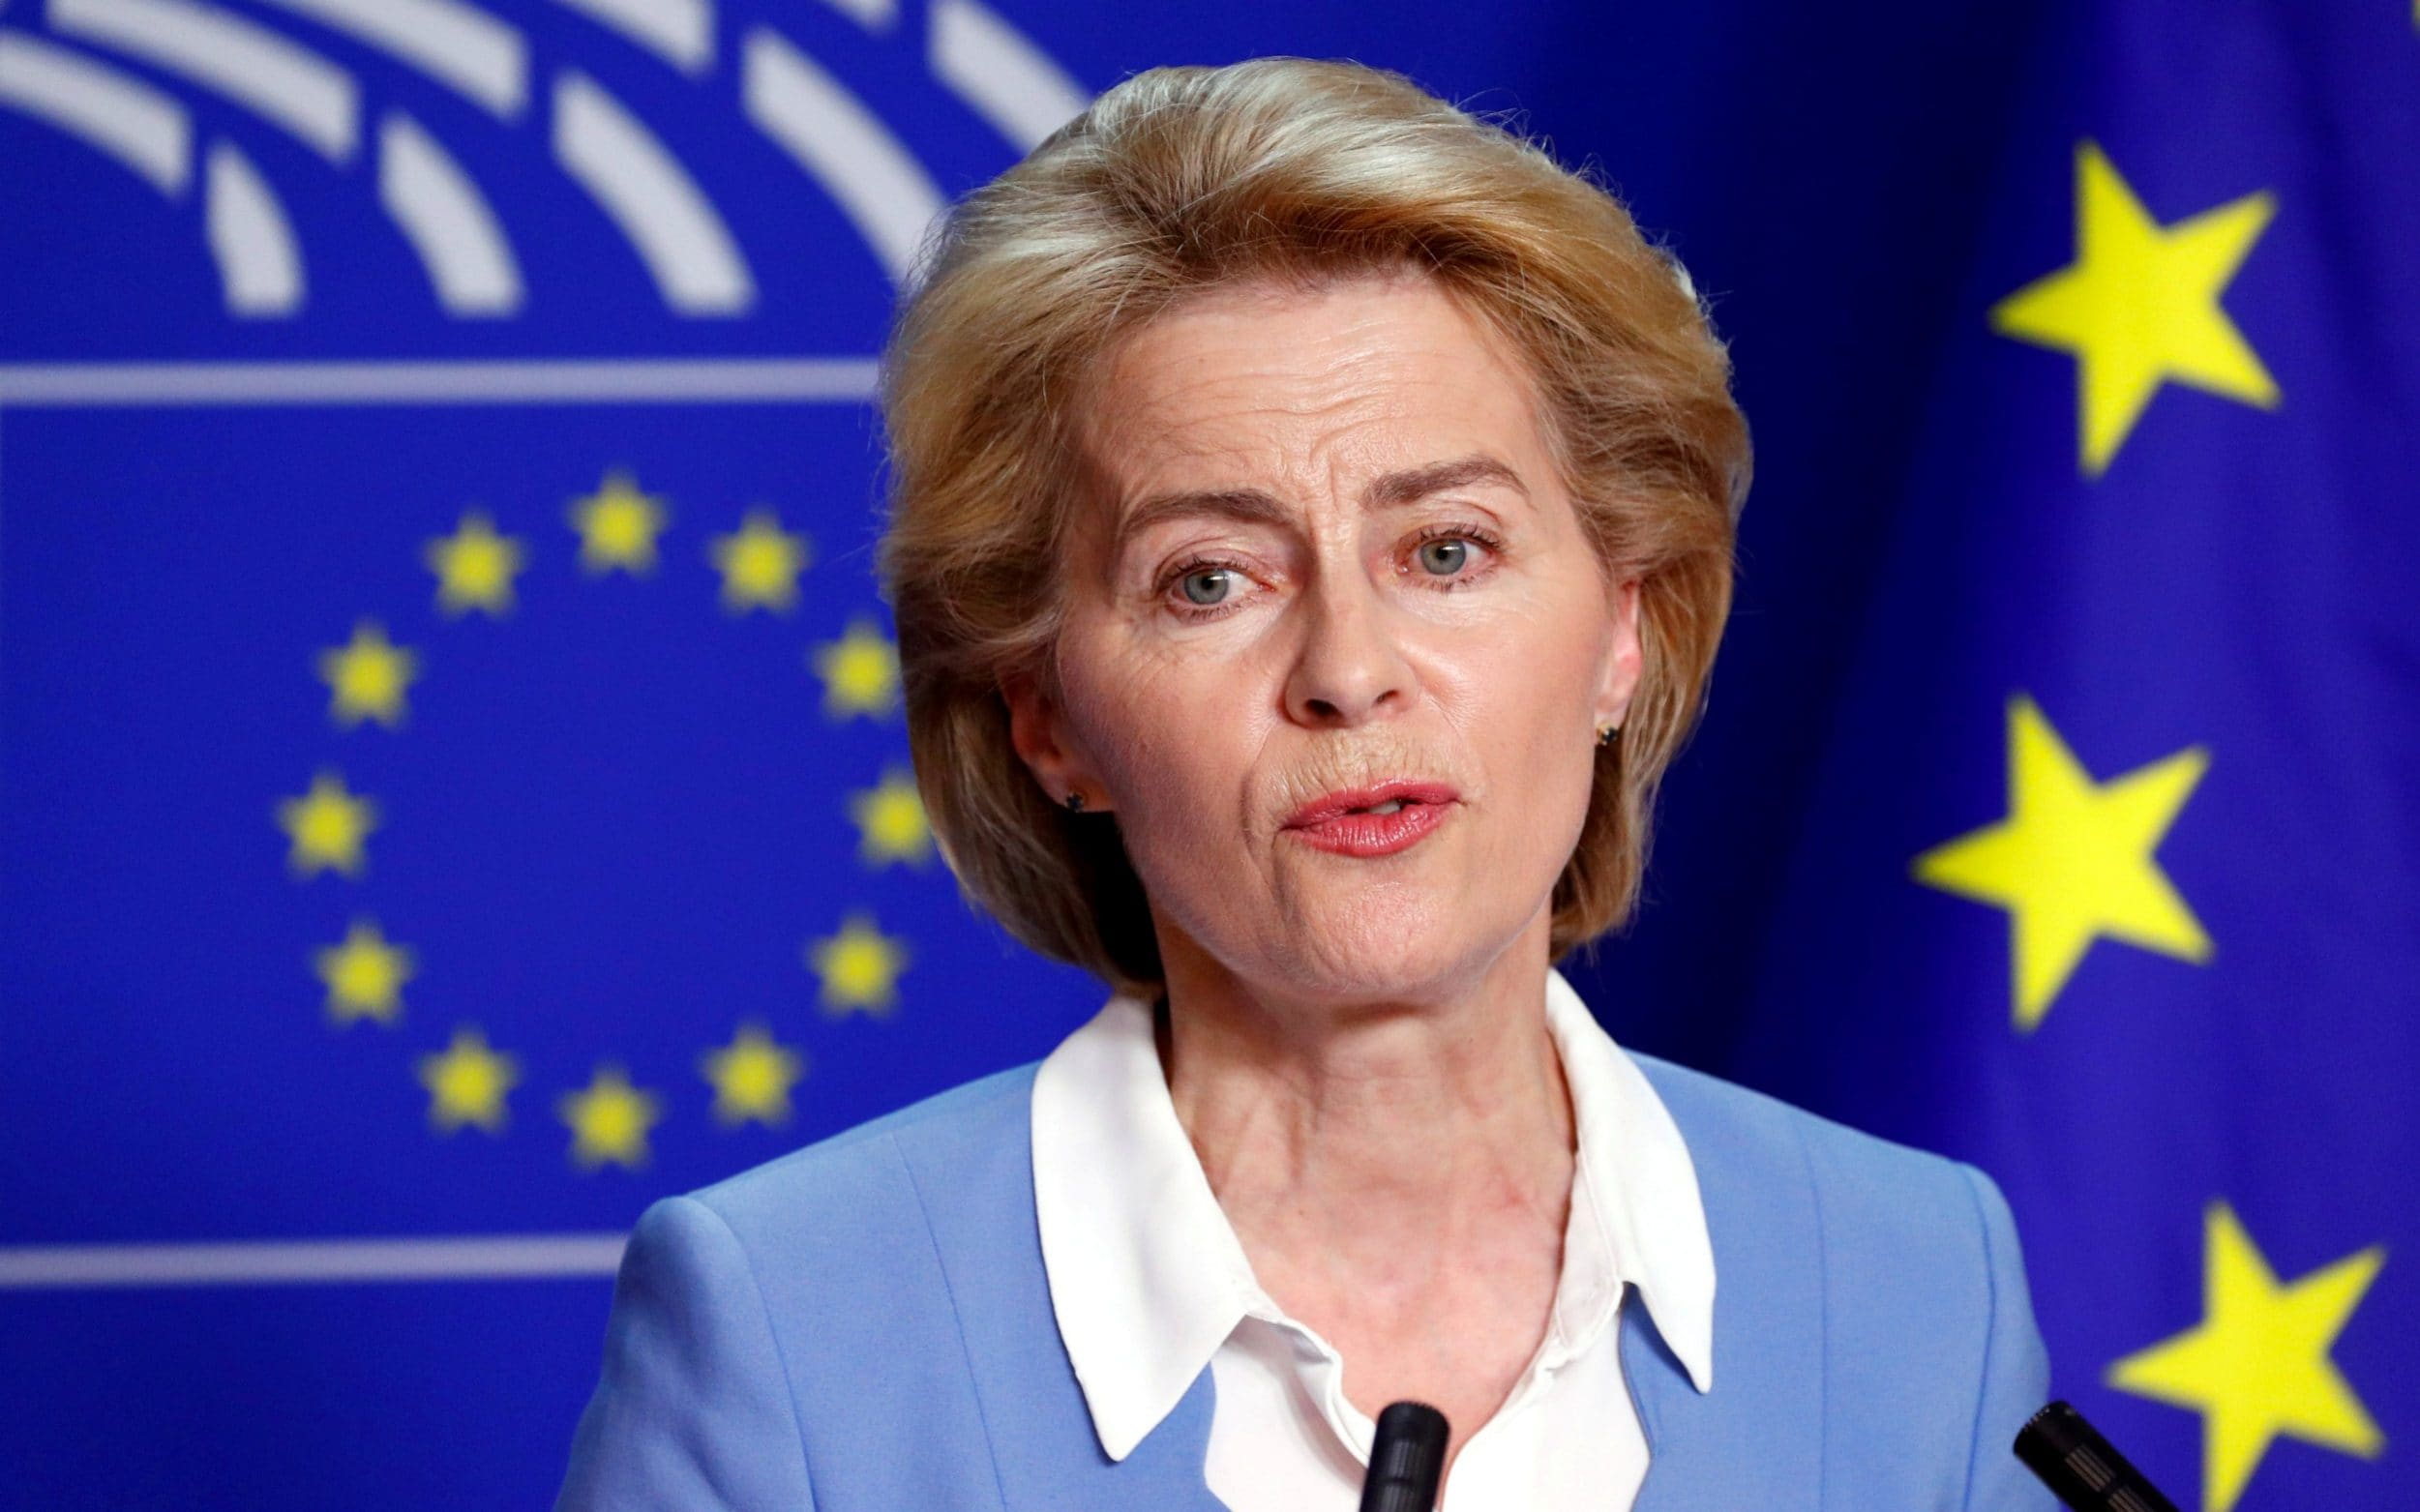 EU.. Tougher controls in migration policy